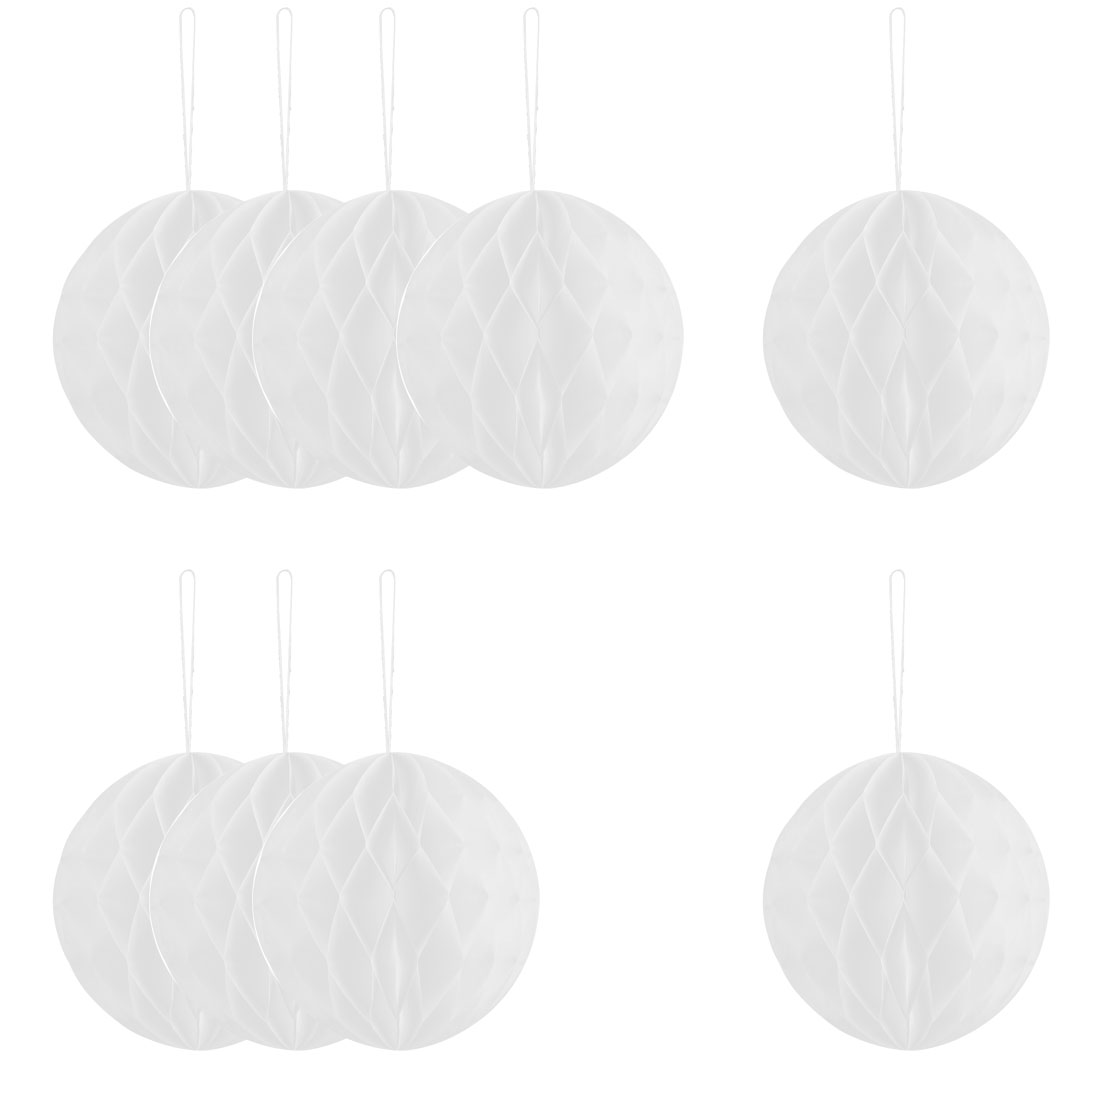 Festival Chinese Style DIY Wall Hanging Ornament Honeycomb Ball White 6 Inch Dia 10pcs